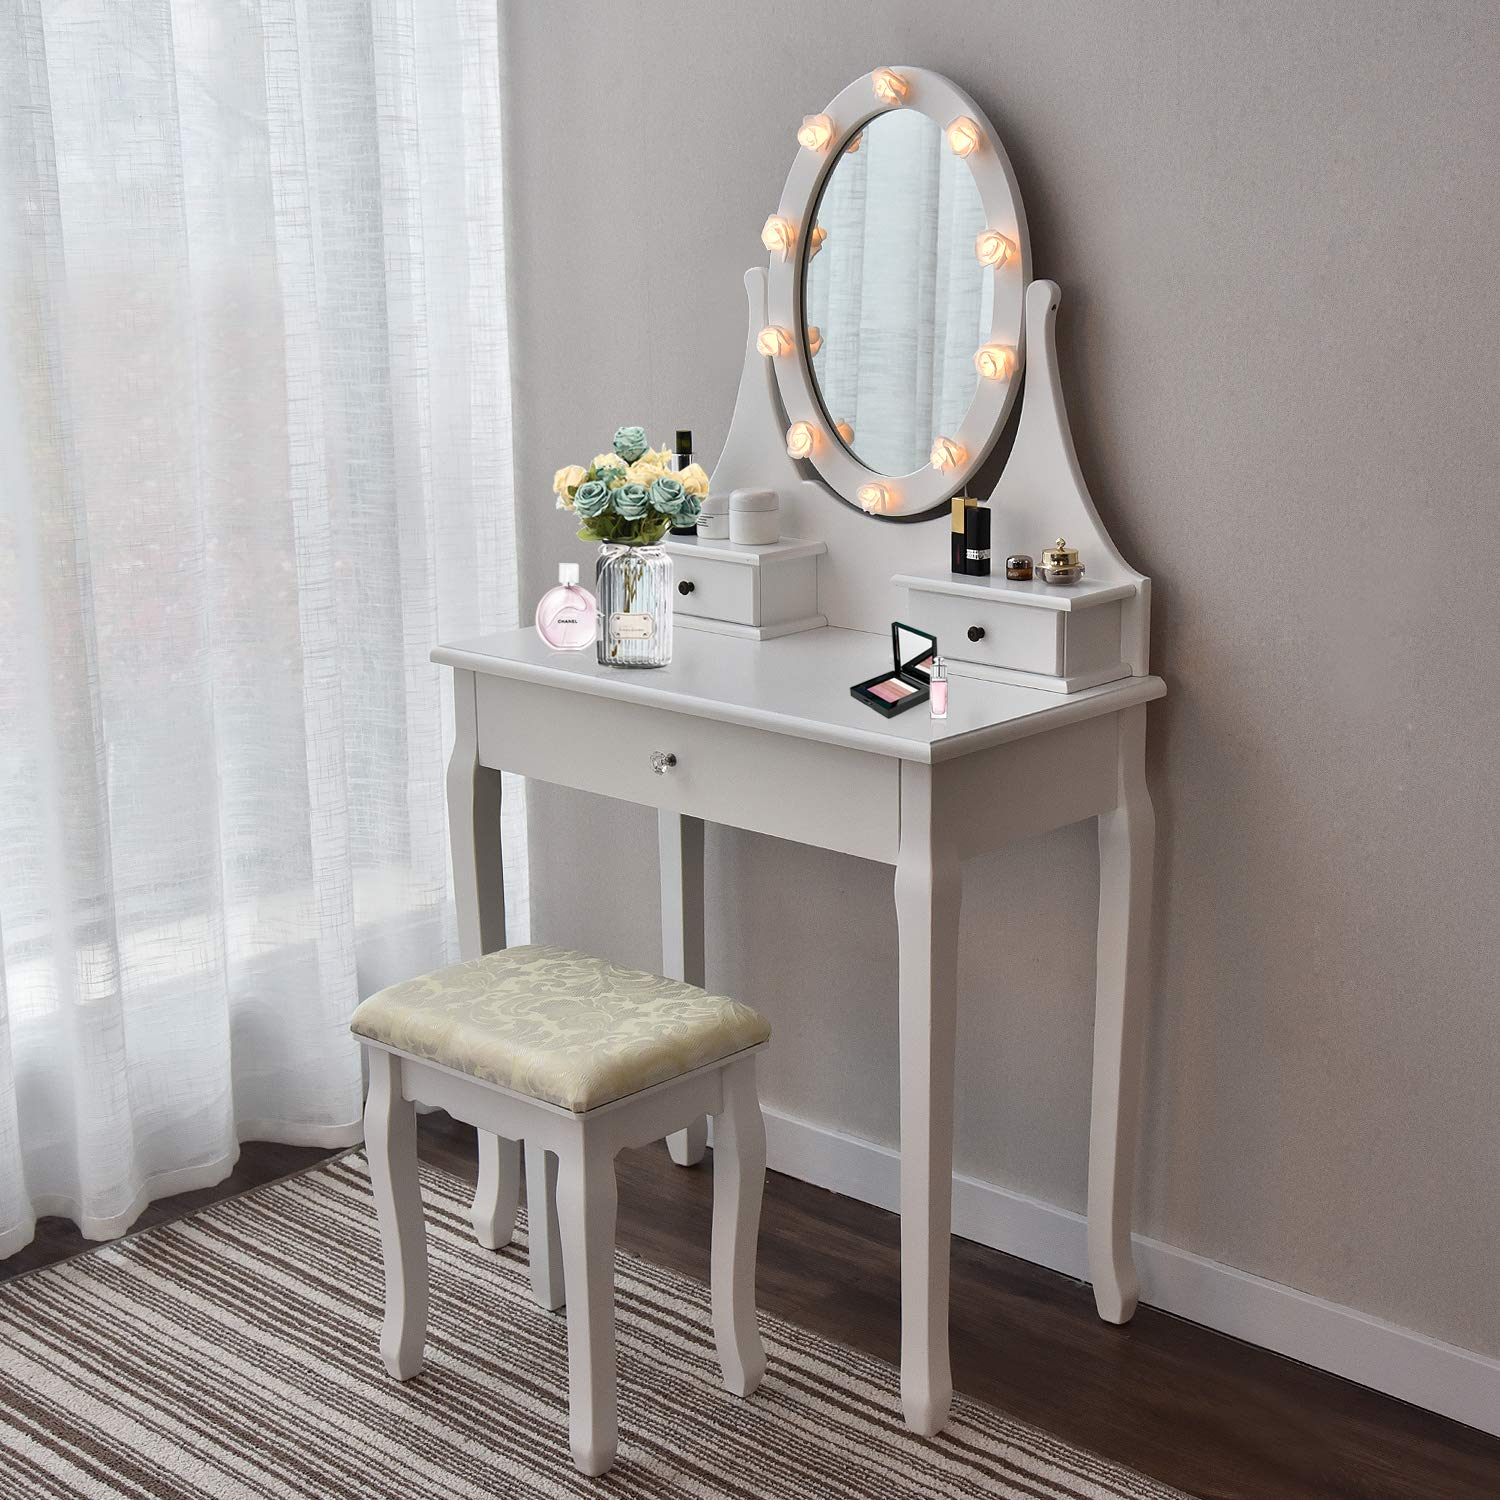 Makeup Vanity Table Set Mirror with LED Lights Dressing Table and Stool Set with Drawers Removable Top Organizer Multi-Functional Writing Desk Padded Stool Large Bedroom Vanities Tables with Benches by YOURLITEAMZ